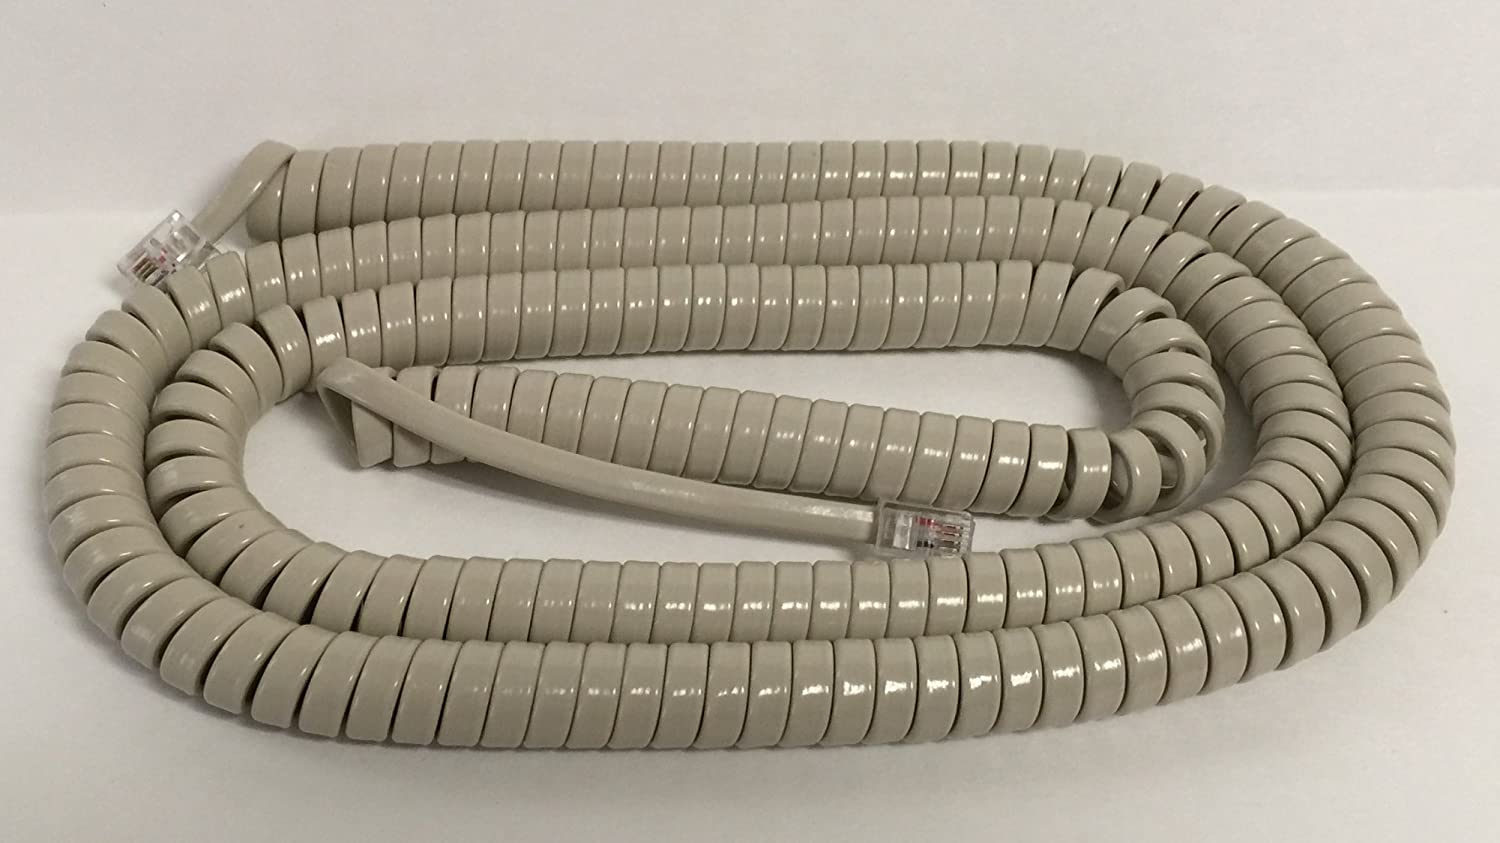 The VoIP Lounge 25 Foot Long Ash Beige Tan Handset Receiver Curly Cord for Nortel Norstar M Series Phone M7100 M7208 M7310 M7324 M2008 M2616 M5316